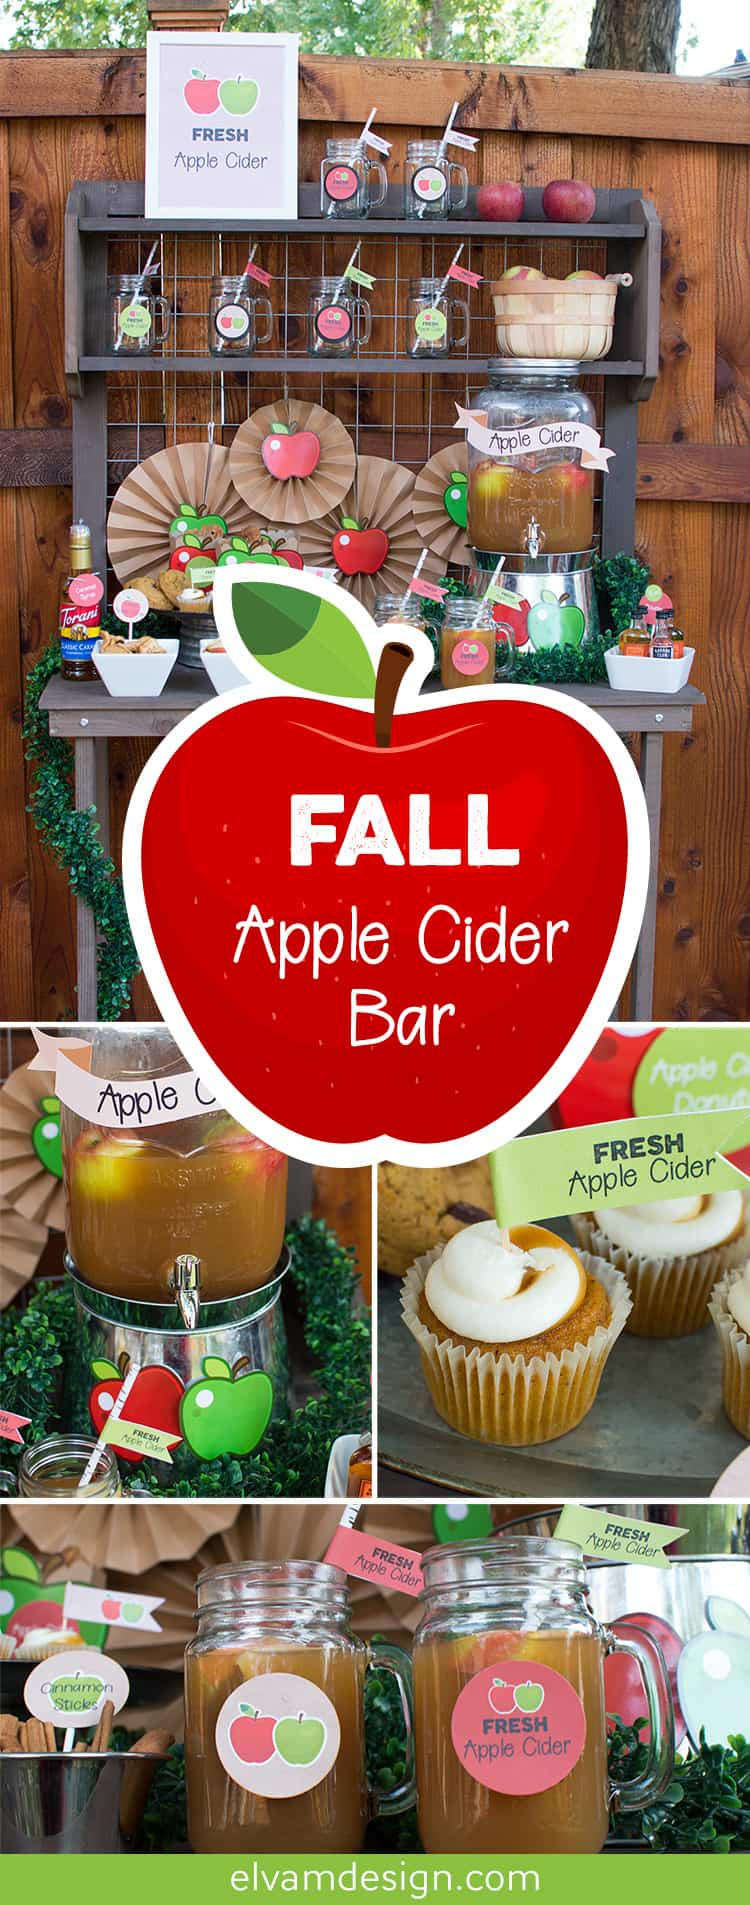 Check out this Fall Apple Cider Bar with tips to style your own bar at Elva M Design Studio